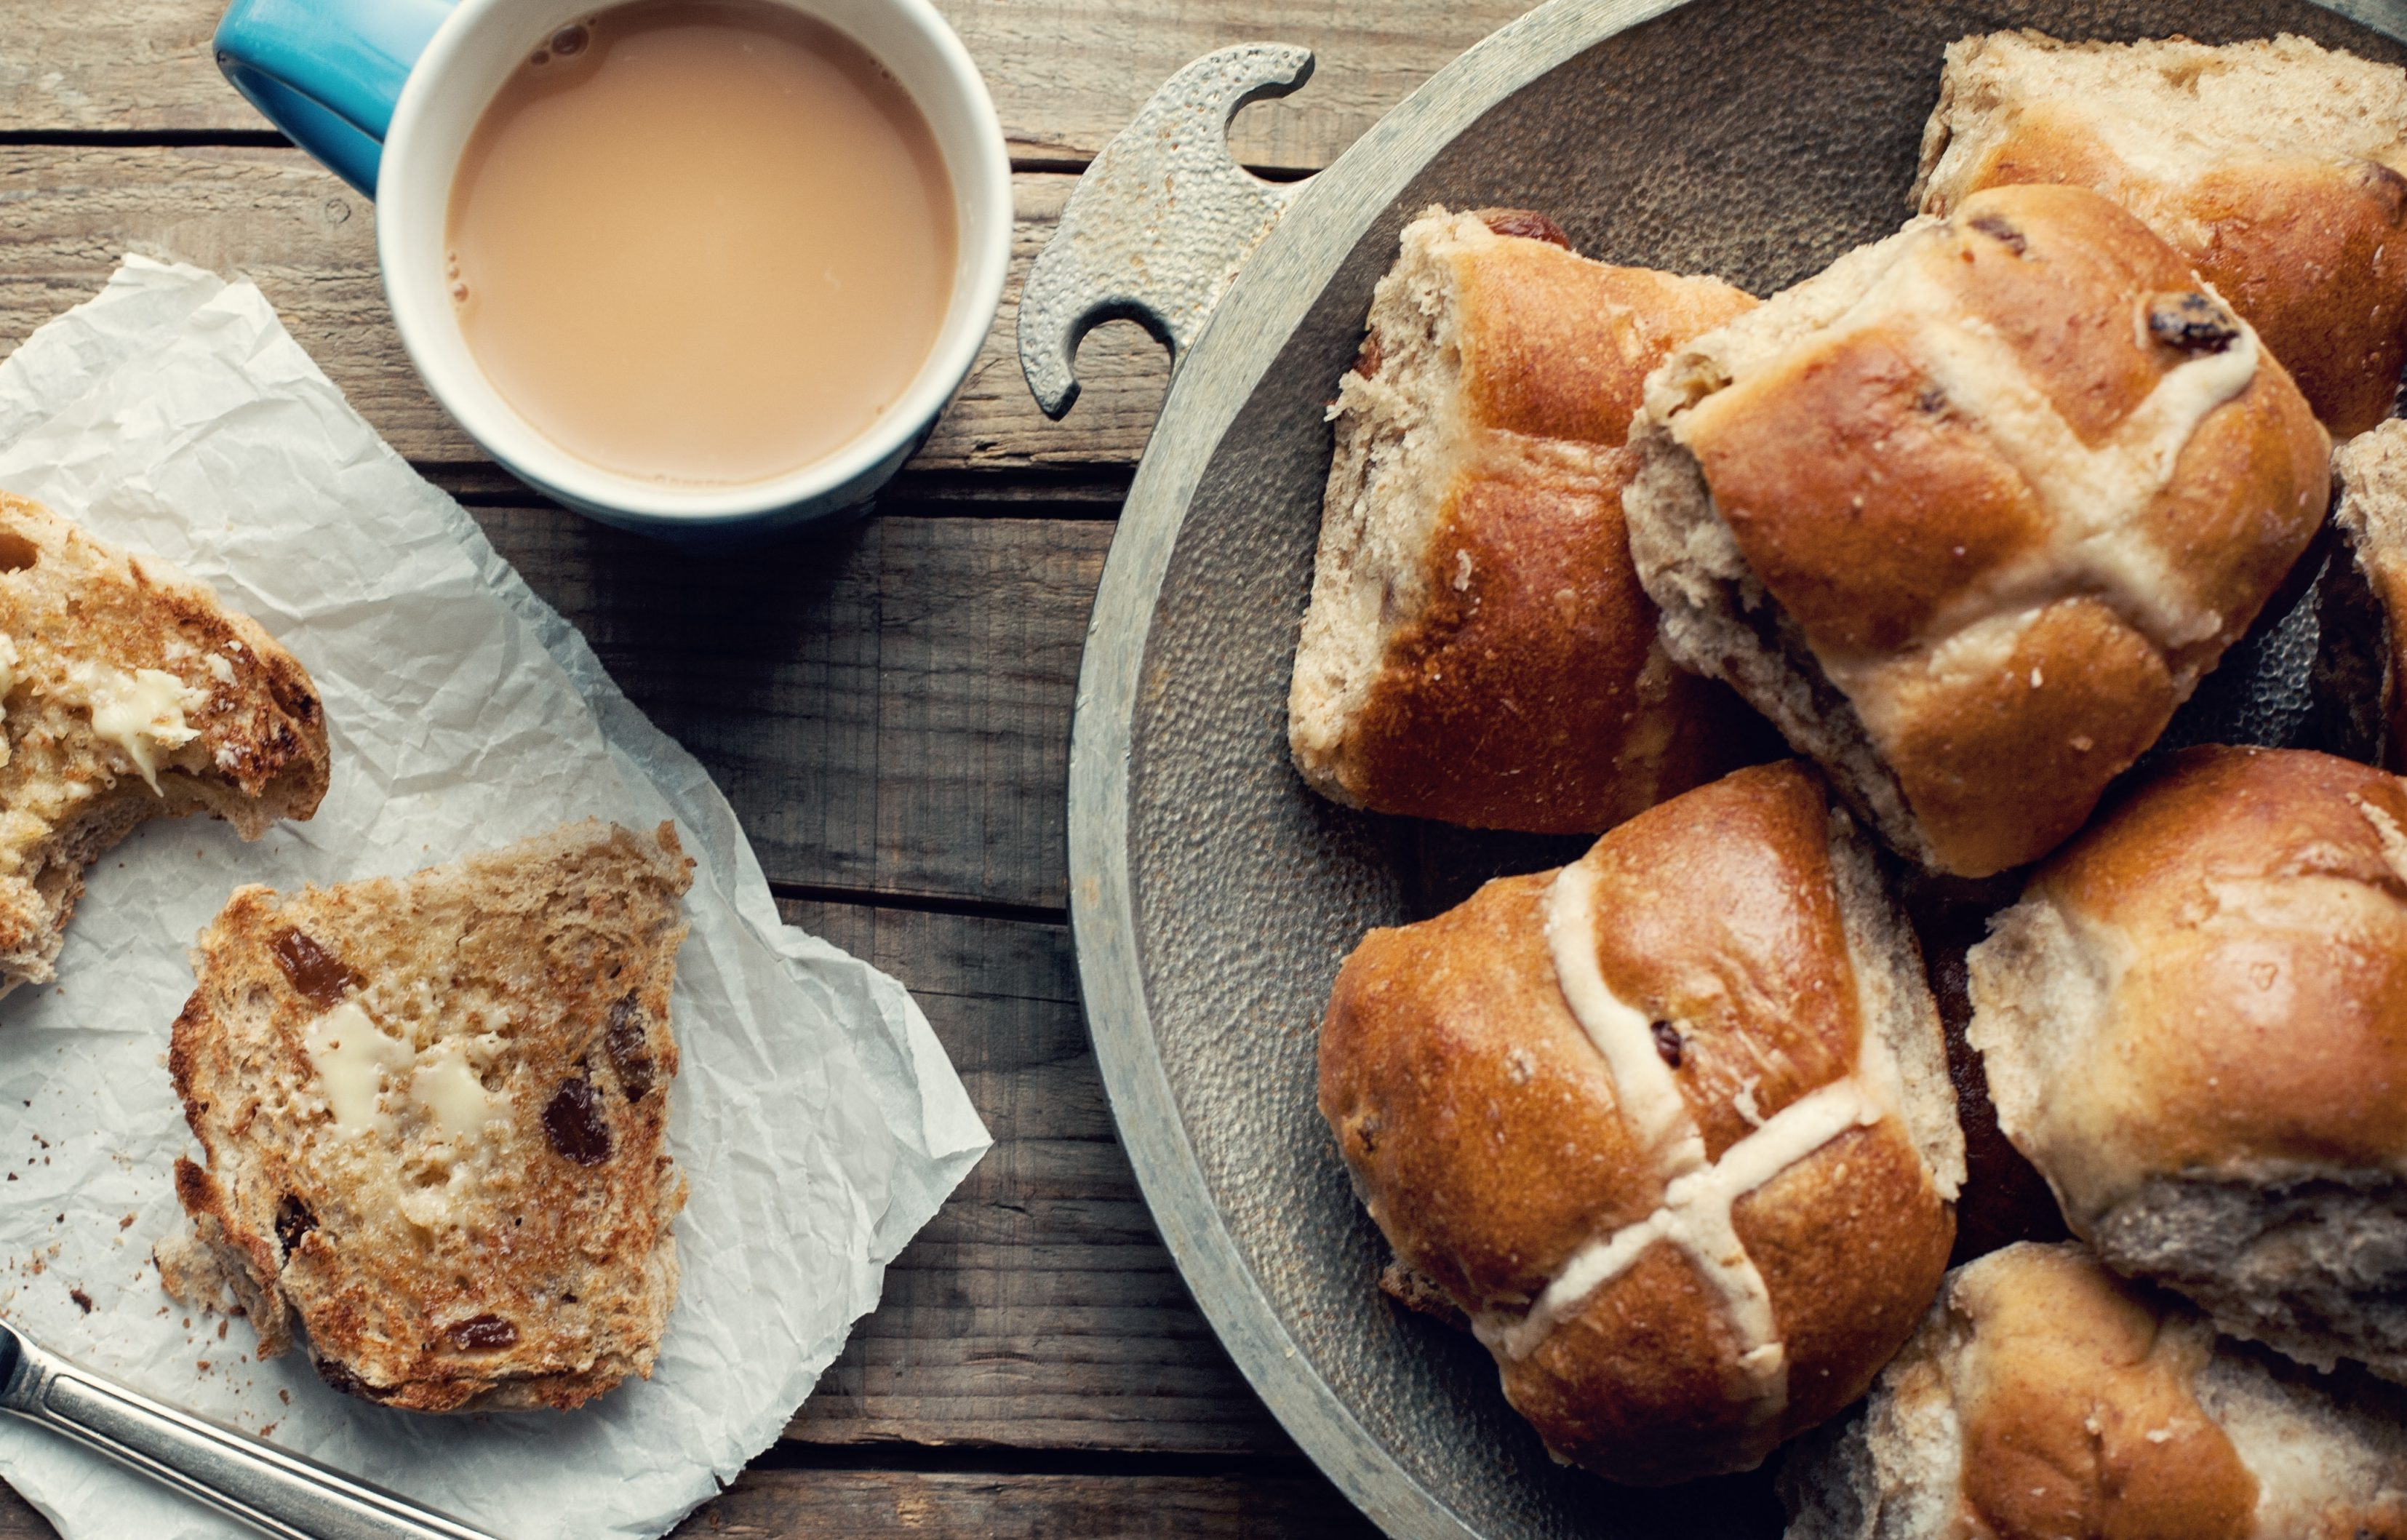 Hot Cross Buns Recipe: Chef Yamila's go-to sticky Easter treat!